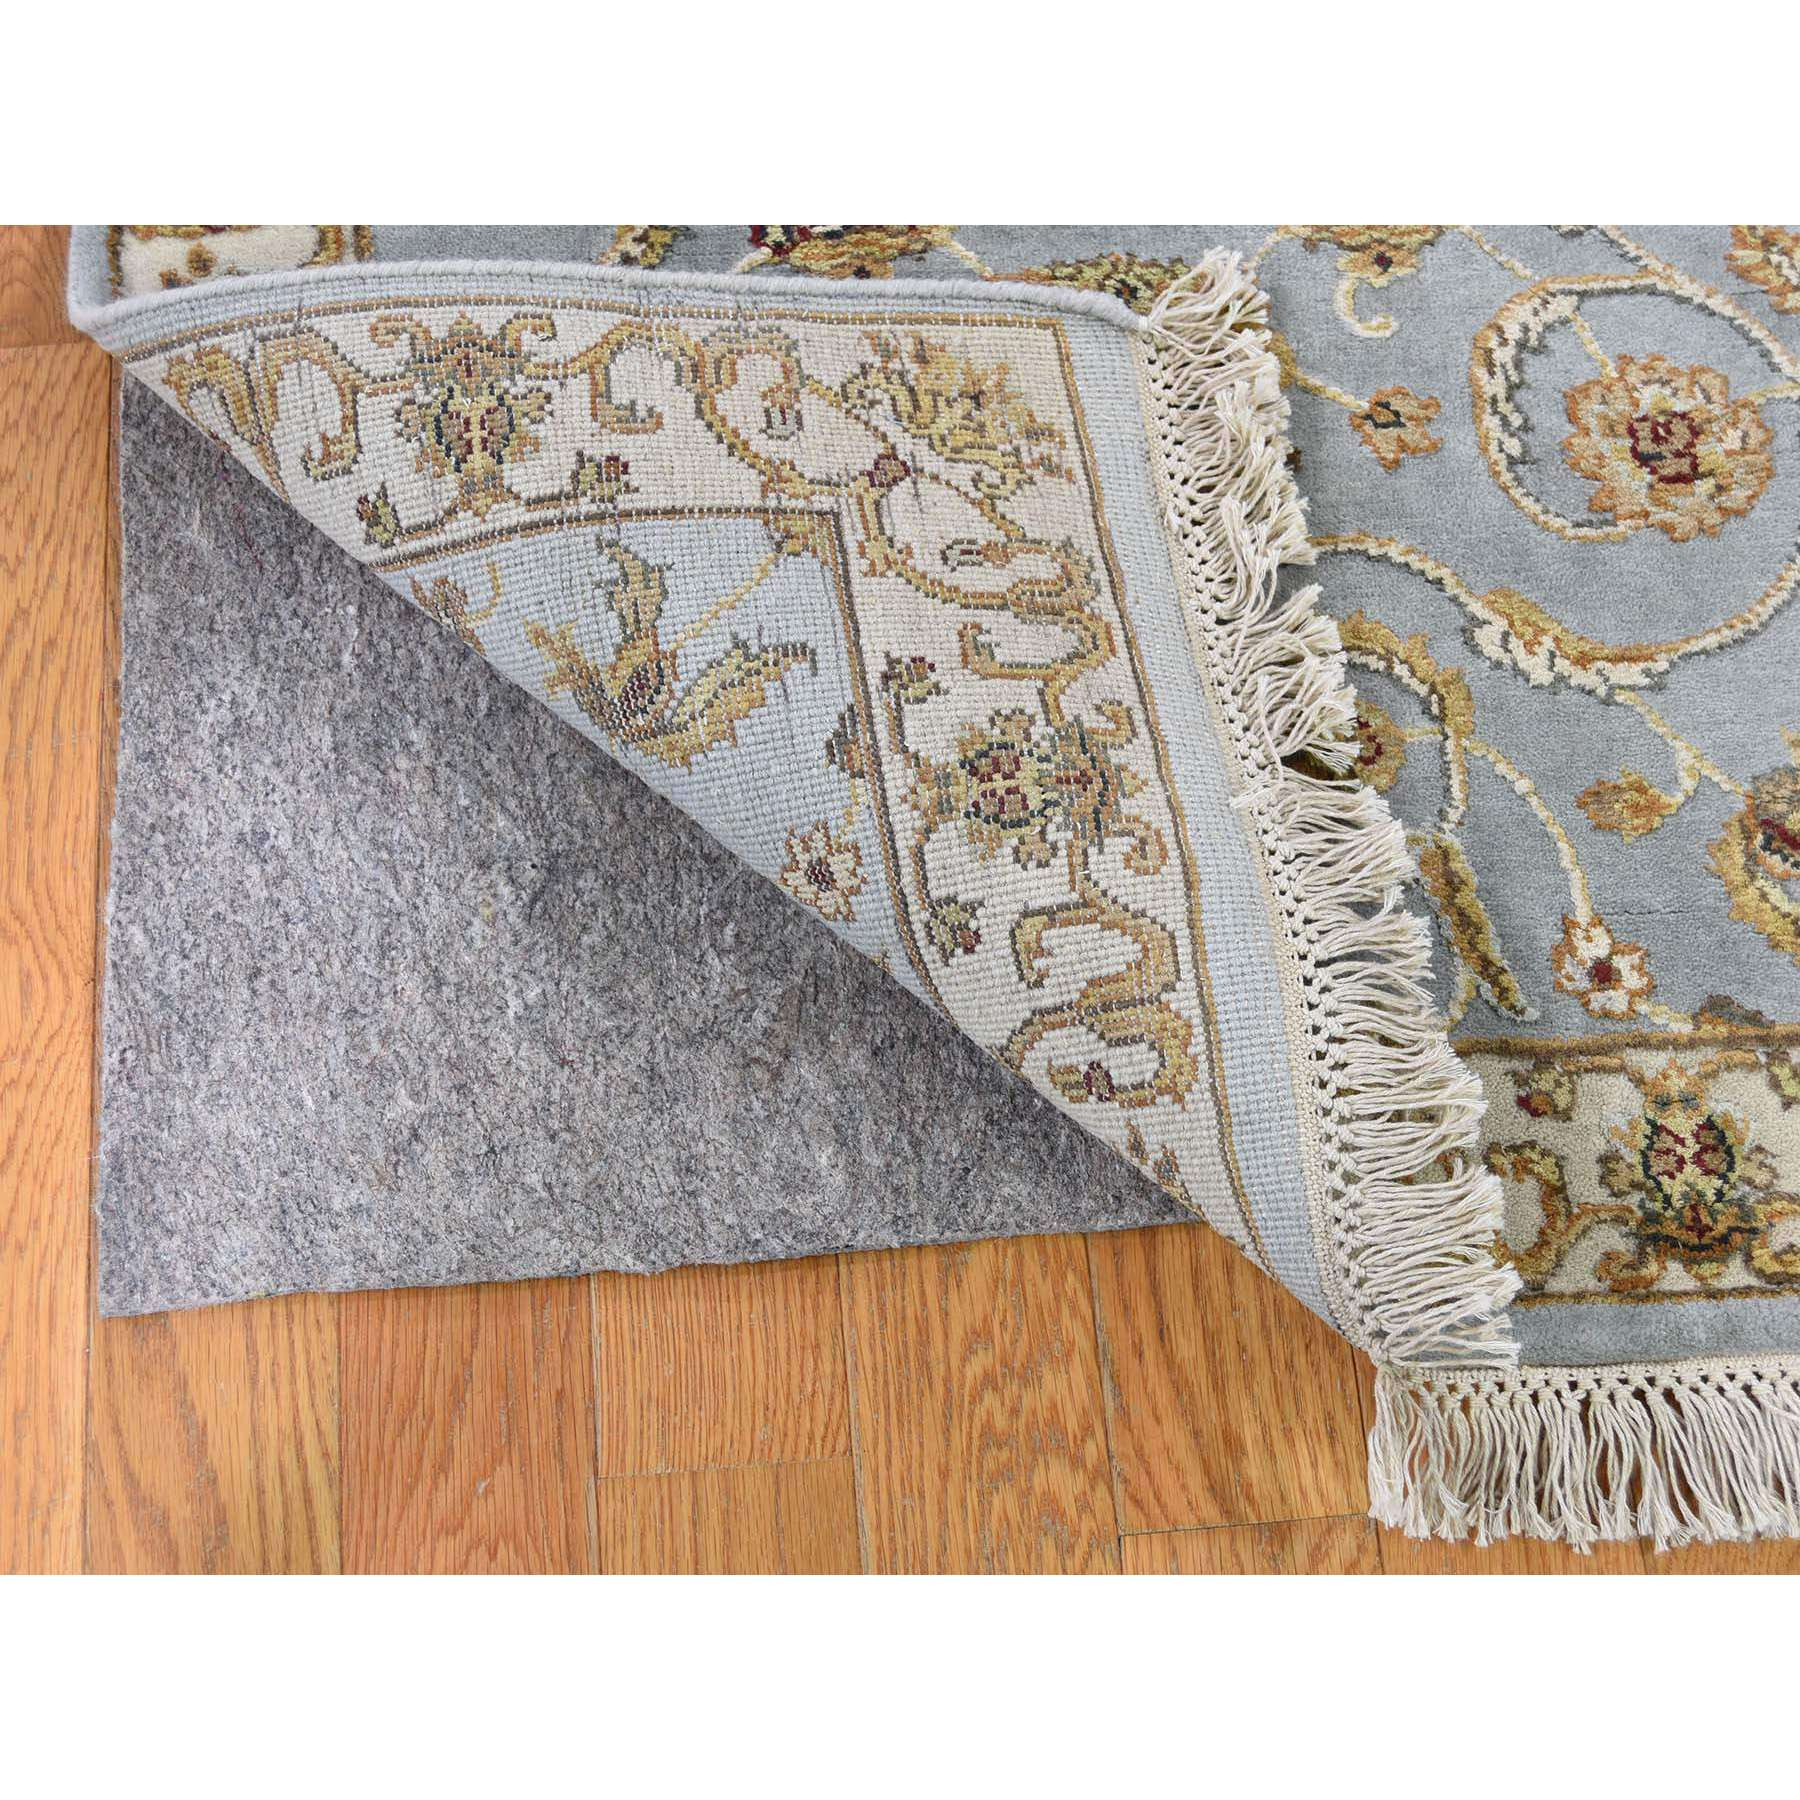 2-7 x12- Rajasthan Half Wool Half and Silk Hand-Knotted Runner Oriental Rug